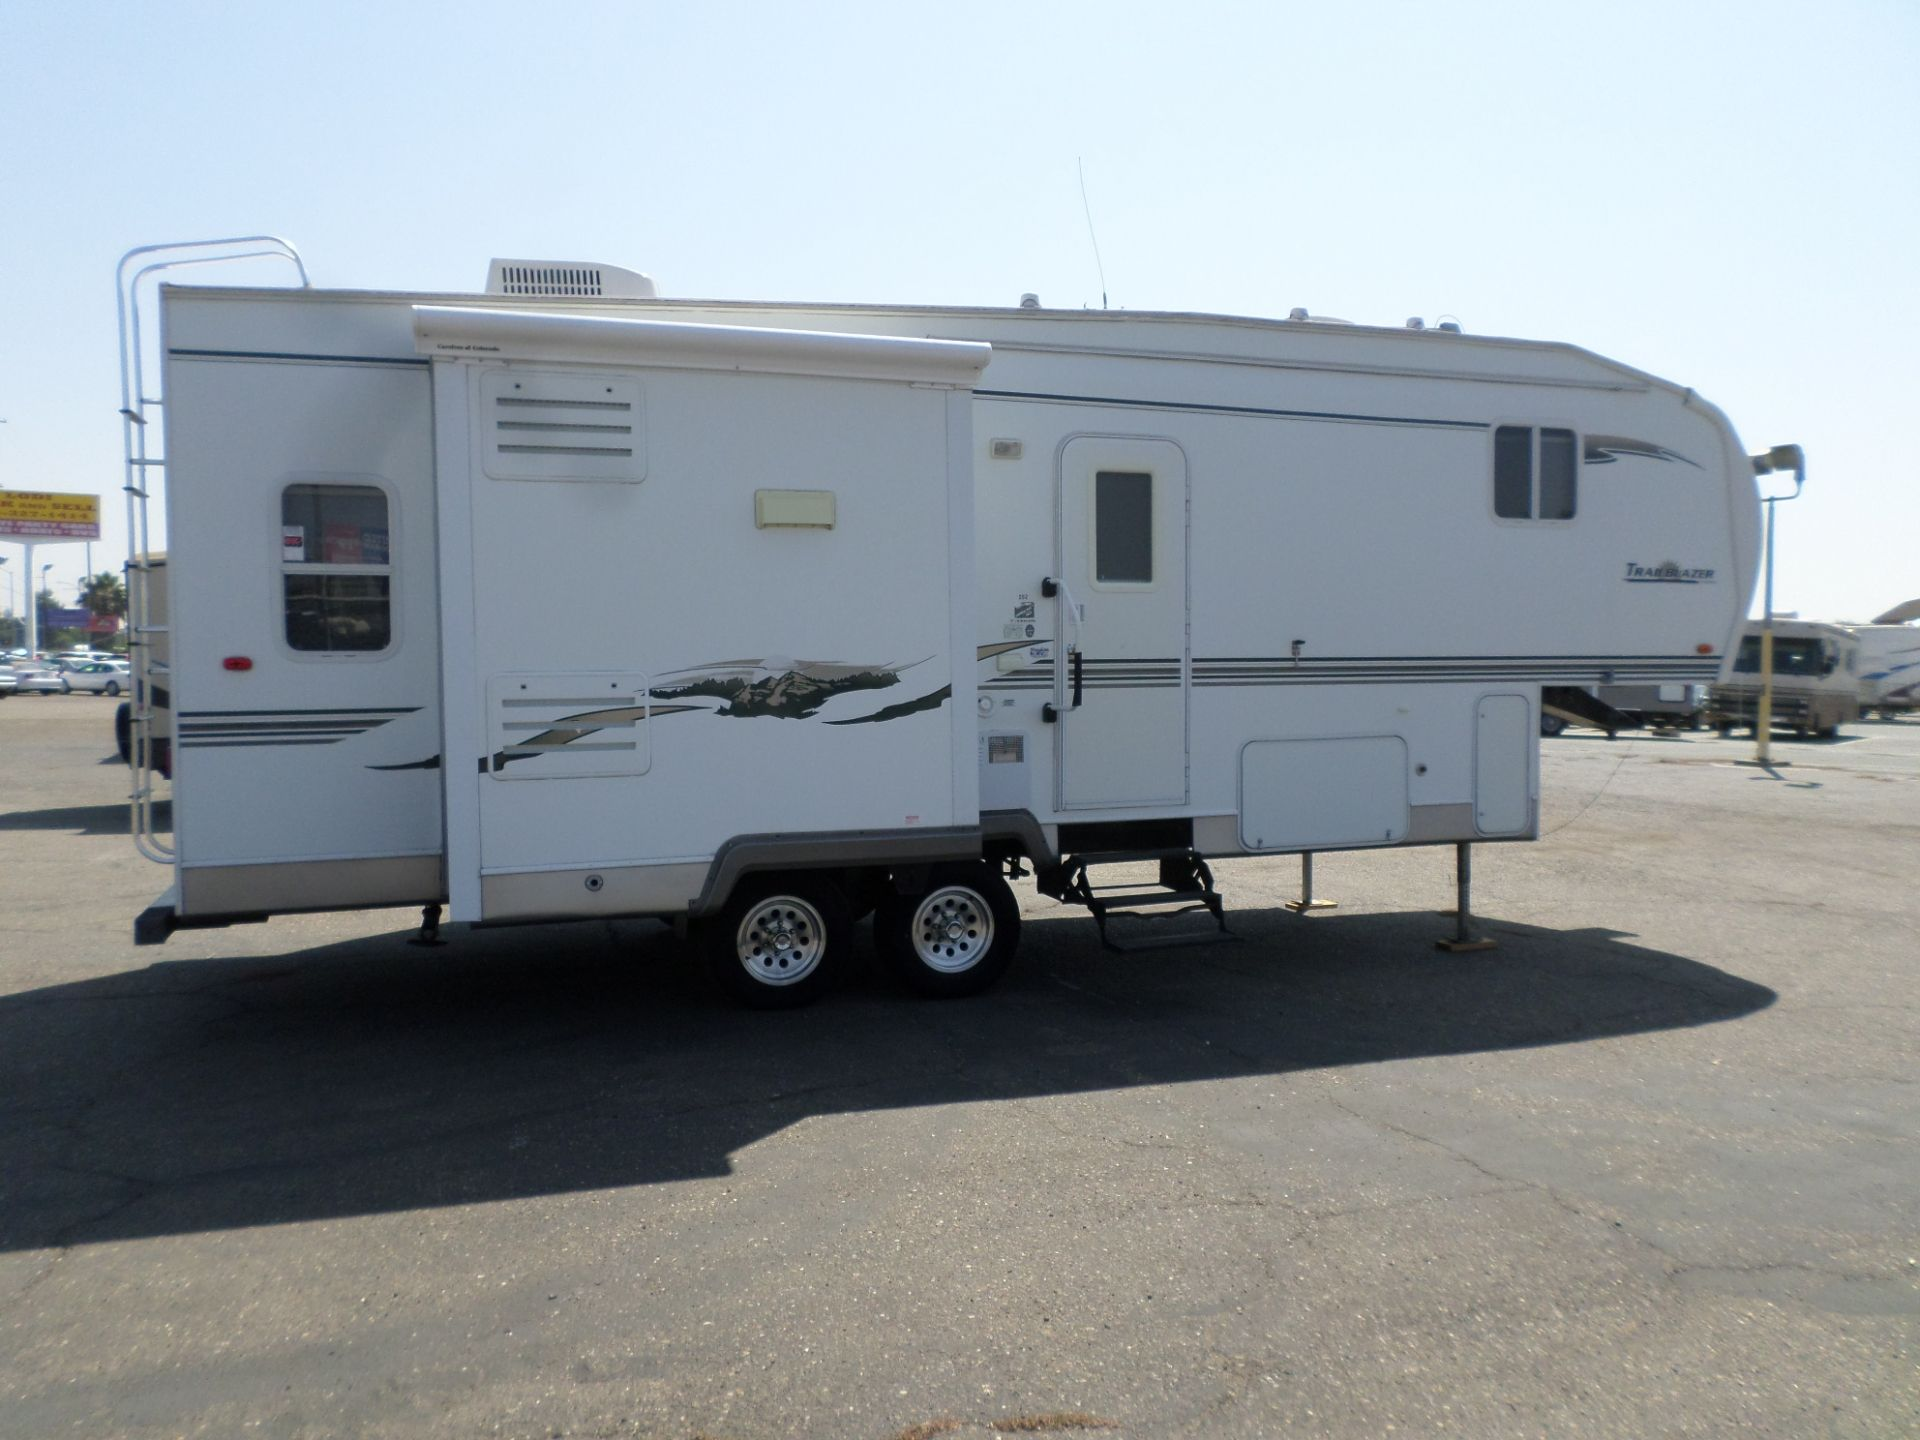 2007 Komfort Trailblazer 252 5th Wheel 5th Wheels For Sale Rv